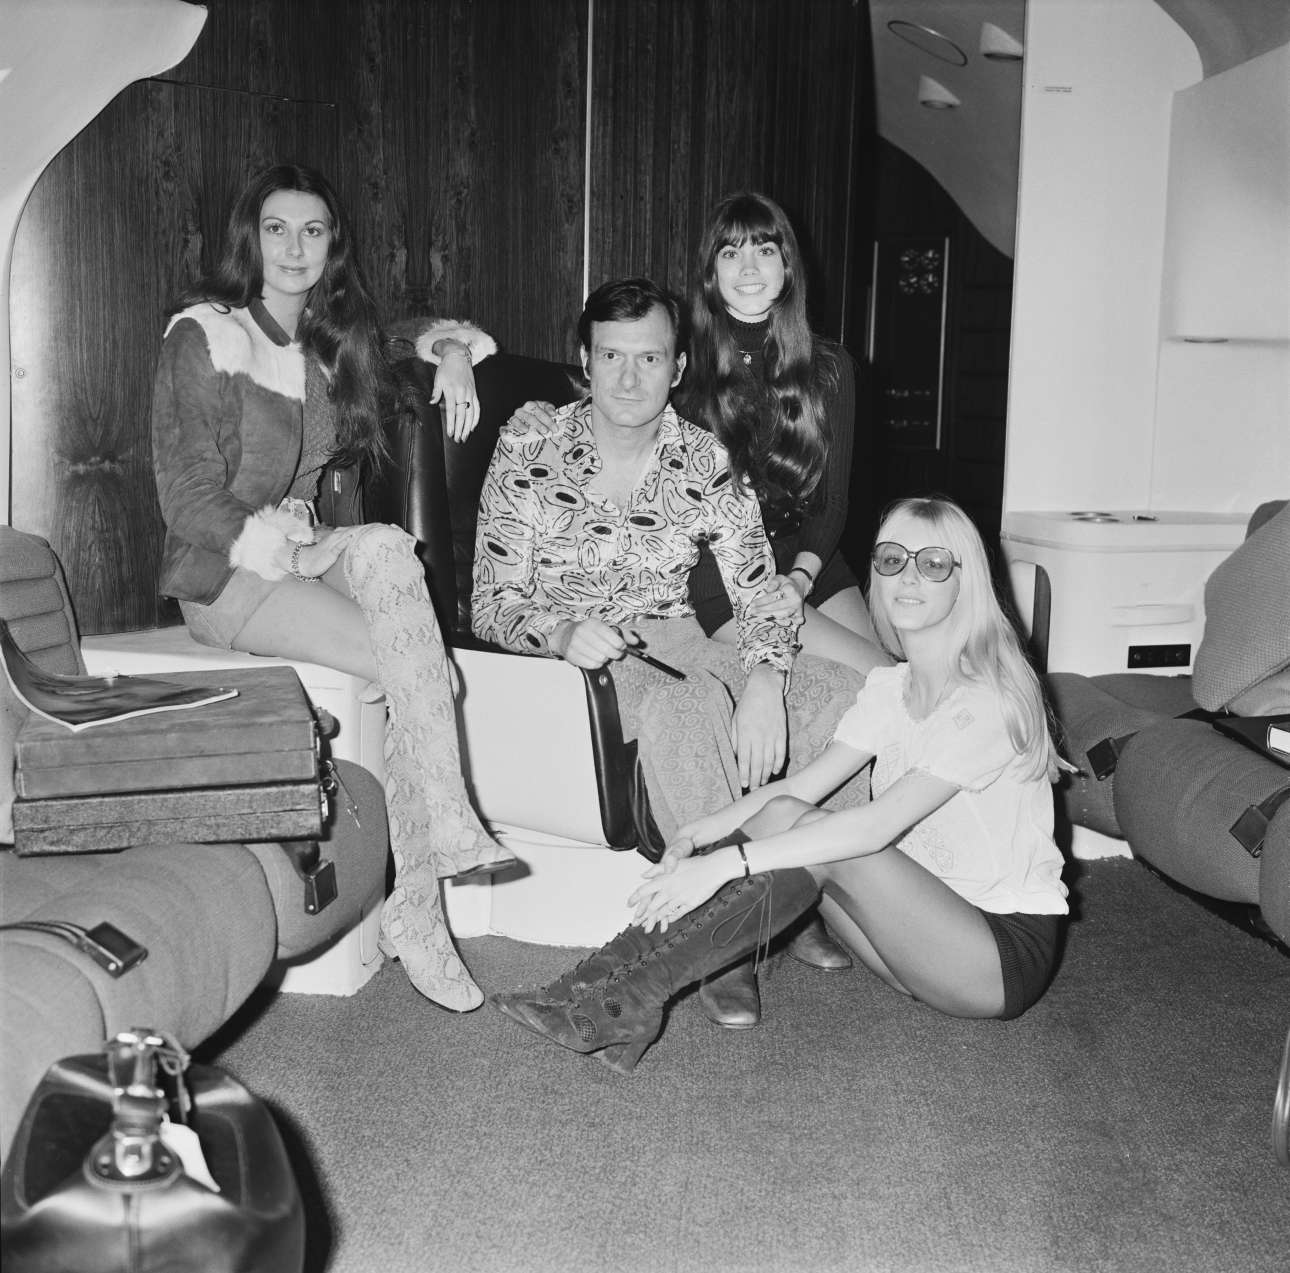 Hefner in his aircraft in London, before flying back to Chicago, 20th February 1971. With him are Playboy models (left to right) Marilyn Cole, Barbi Benton and Connie Kreski.